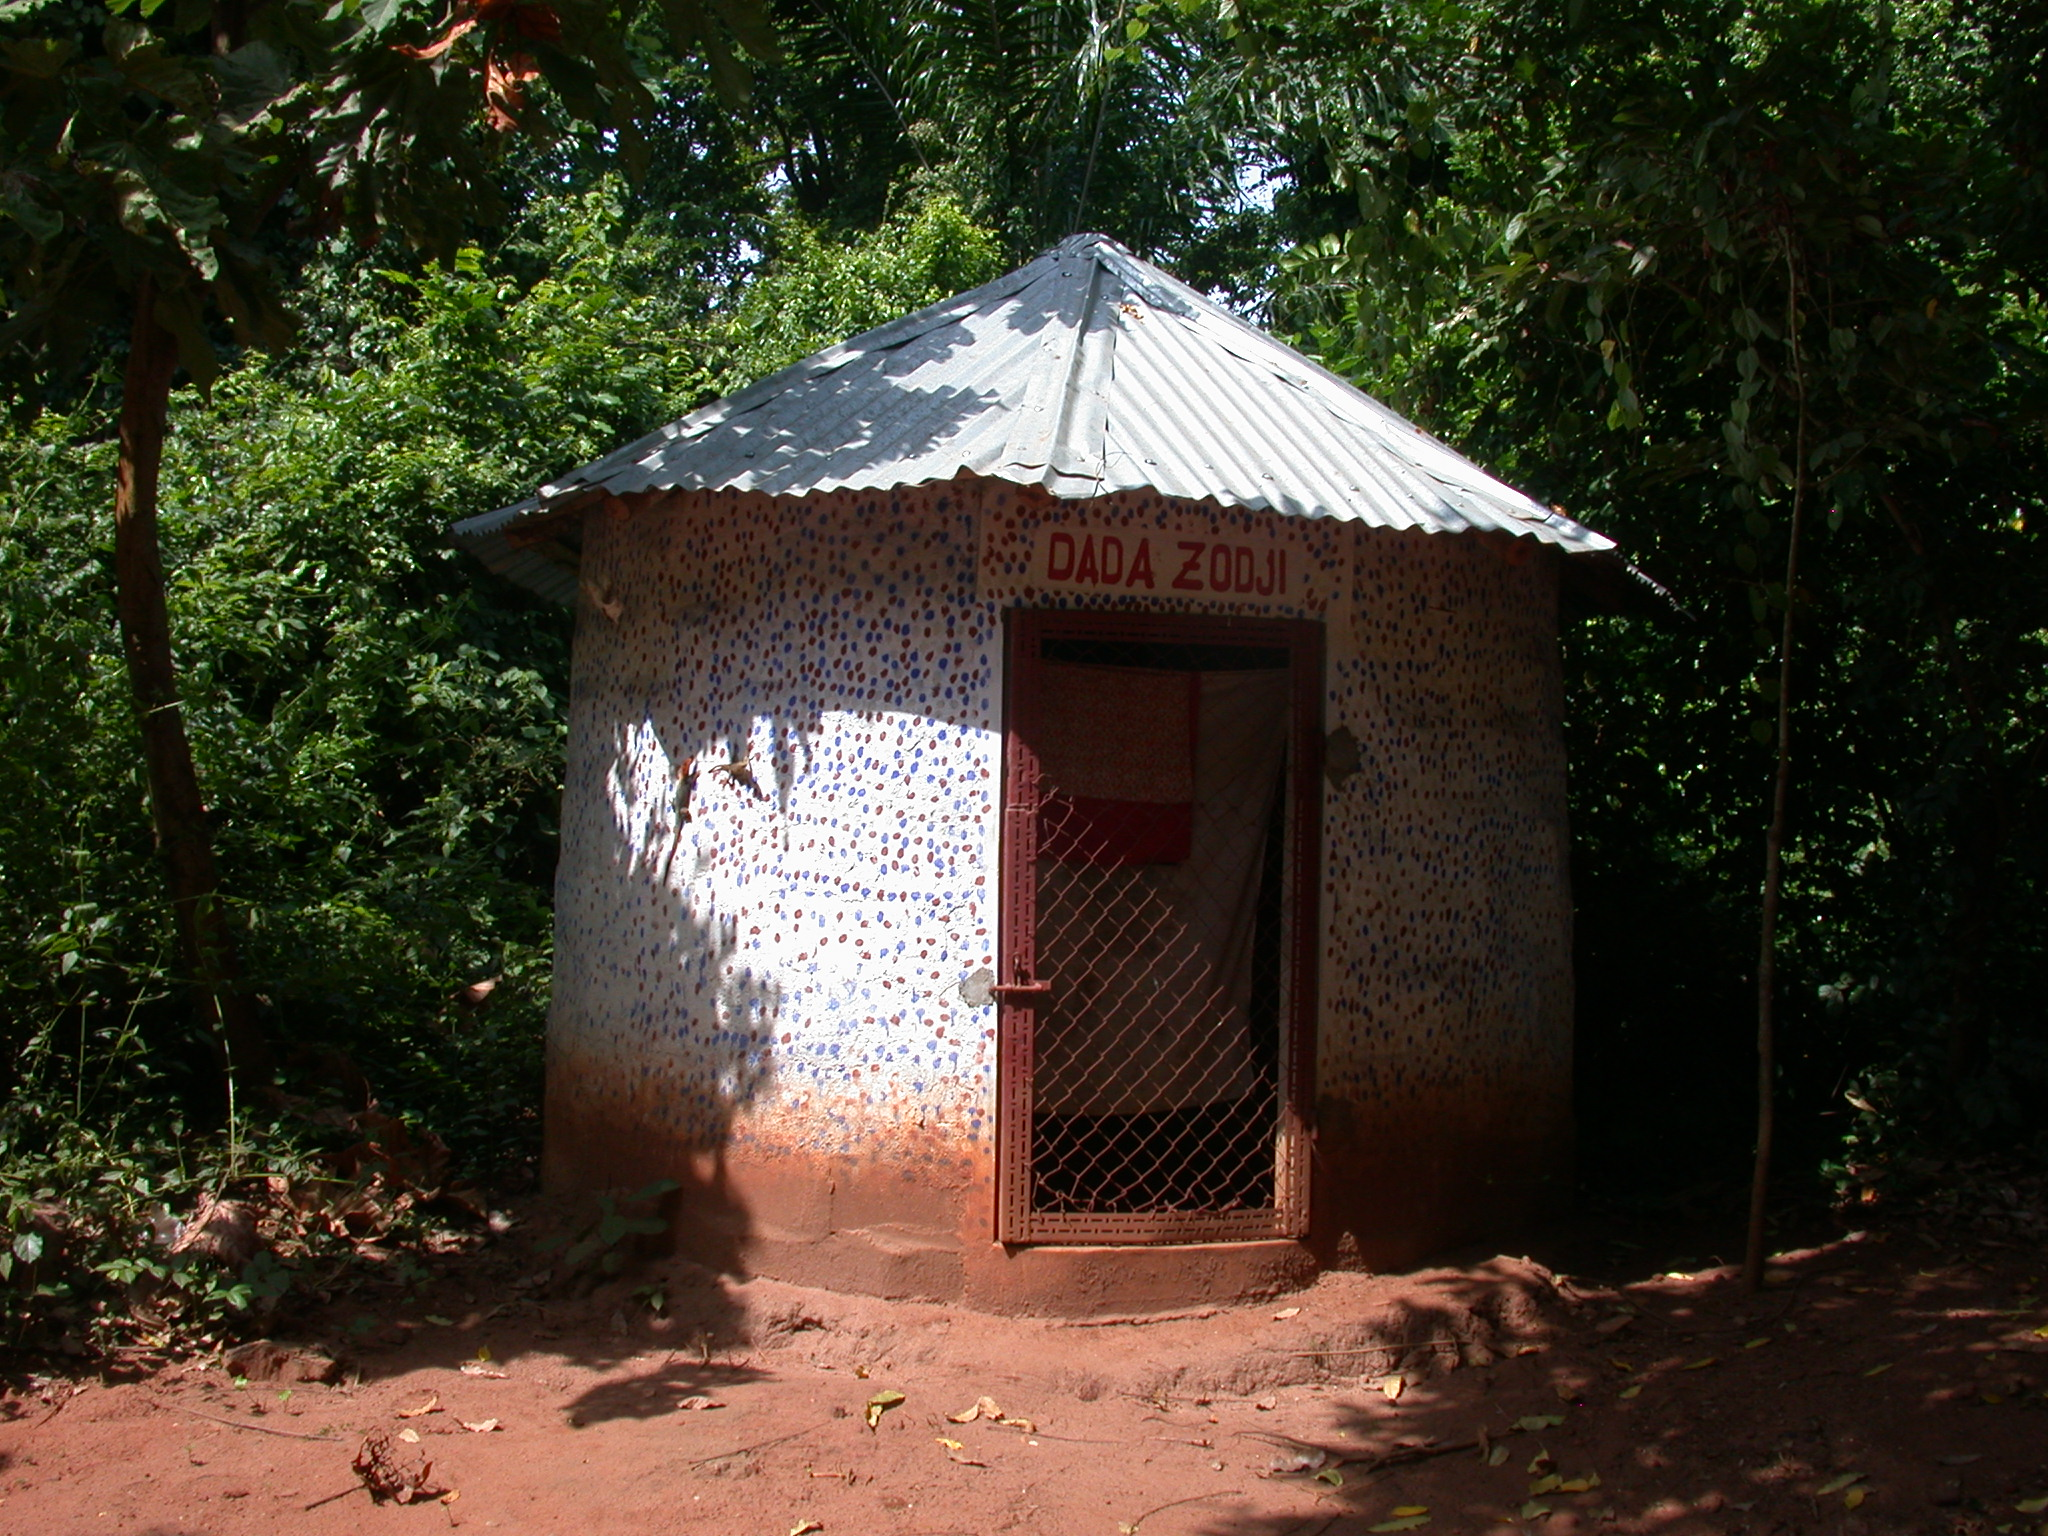 Shrine to Dada Zodji, God of Smallpox and Twin Son of Mawu-Lisa, Kpasse Sacred Forest, Ouidah, Benin